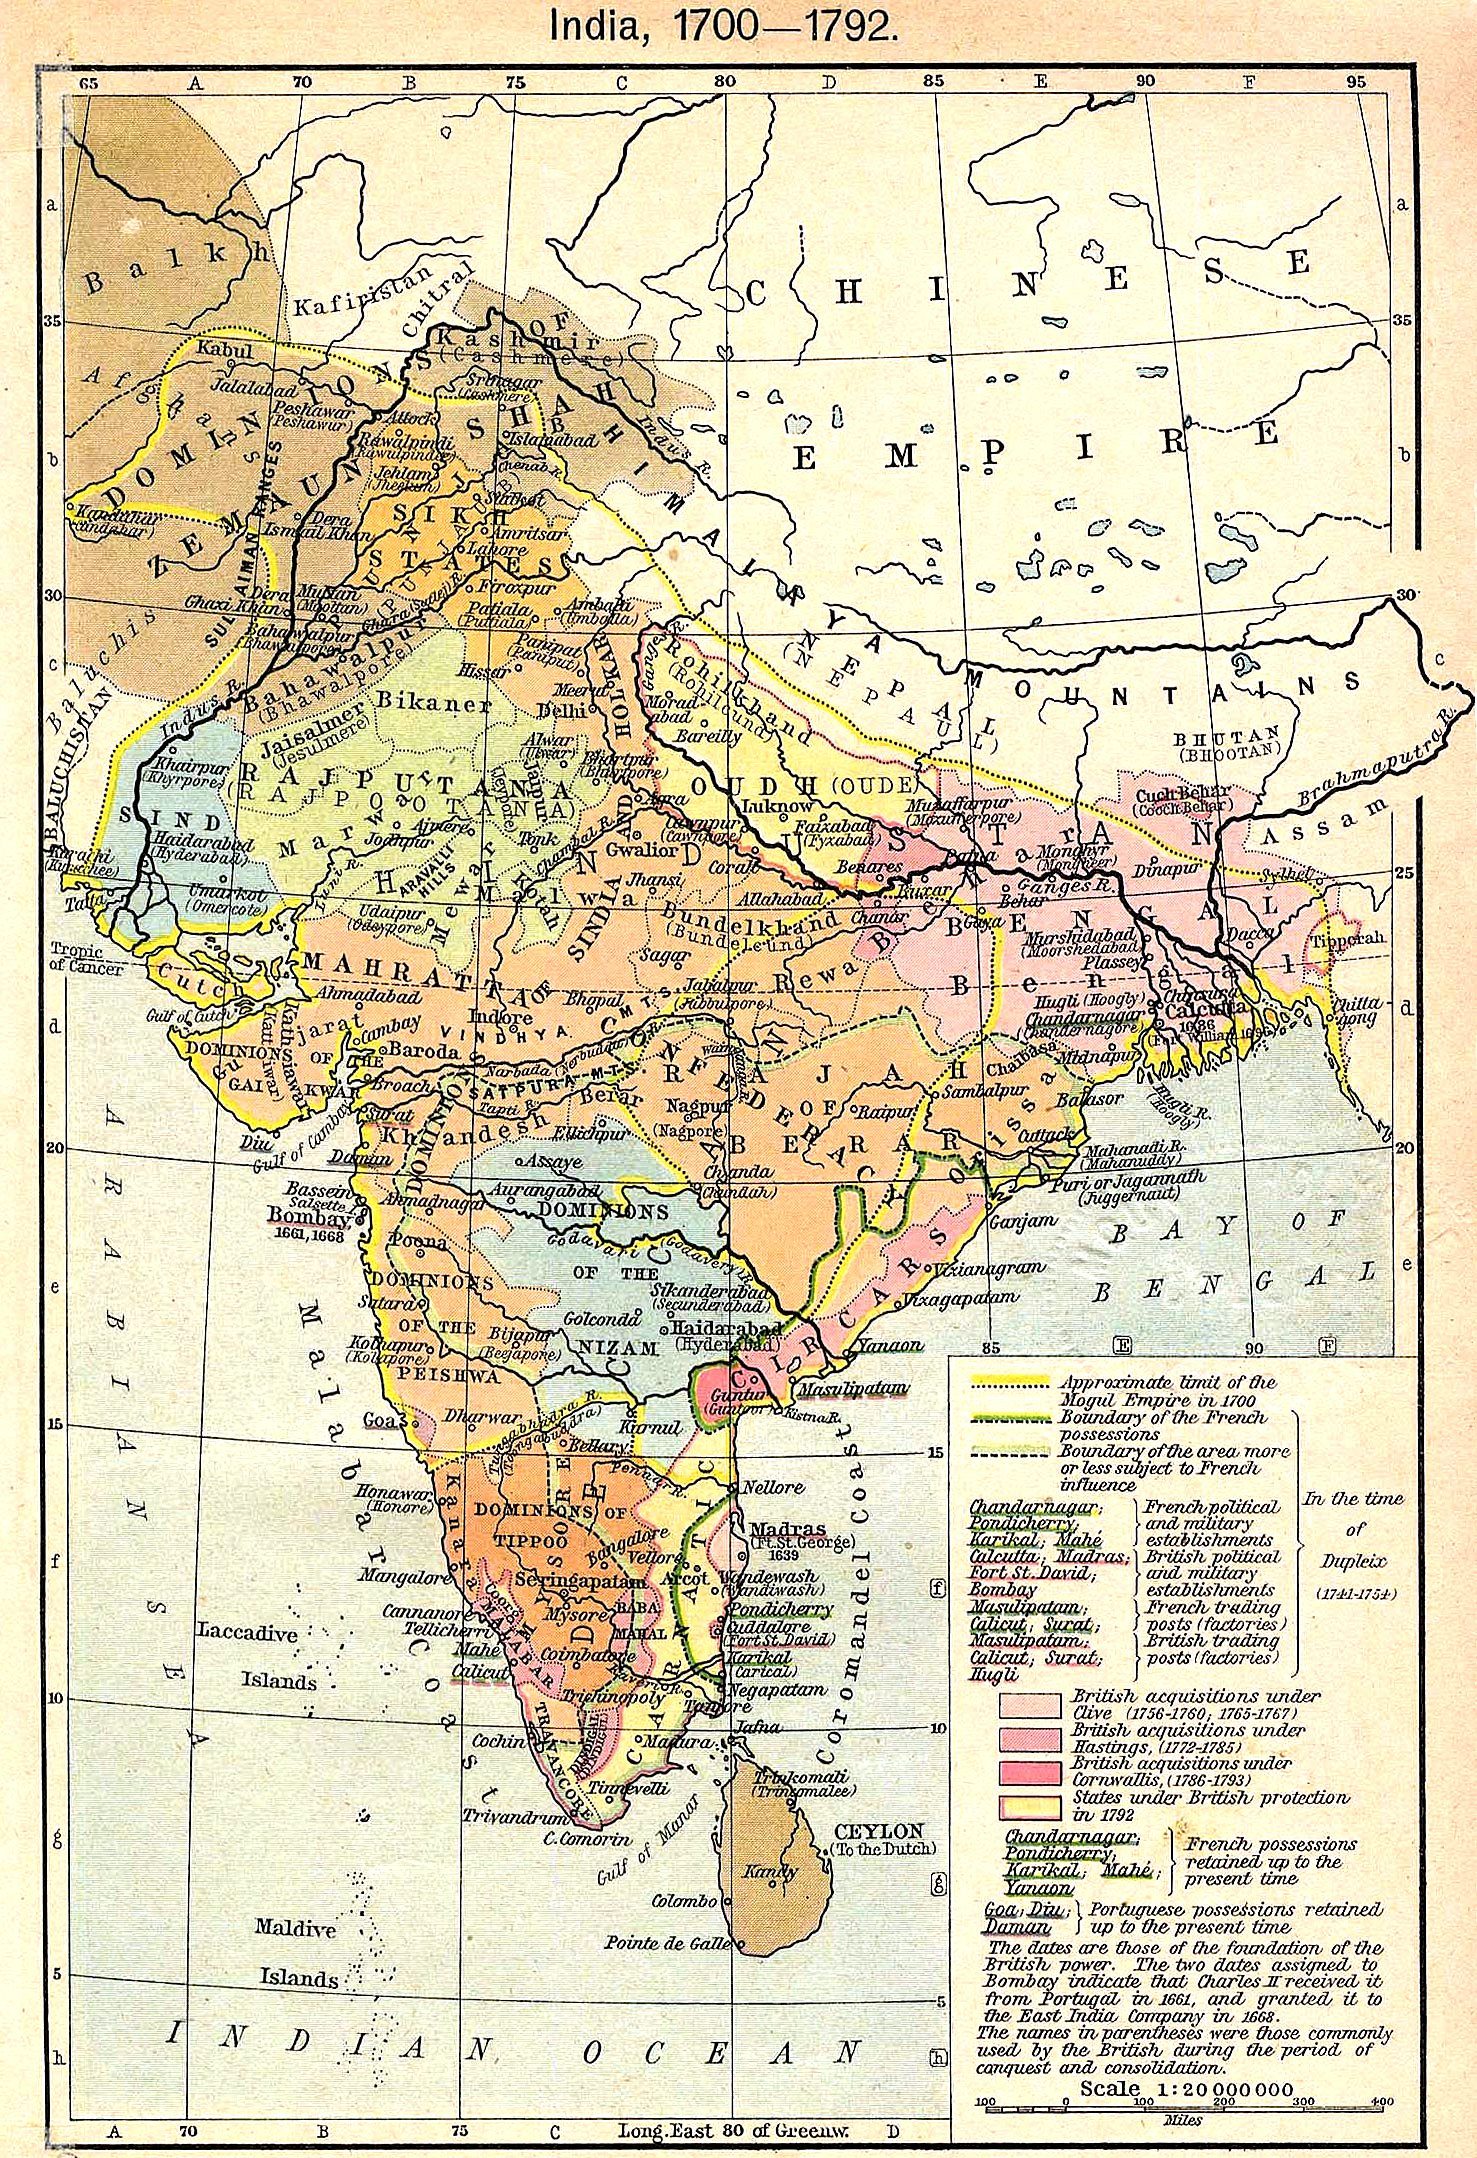 FileIndia map 1700 1792jpg  Wikimedia Commons